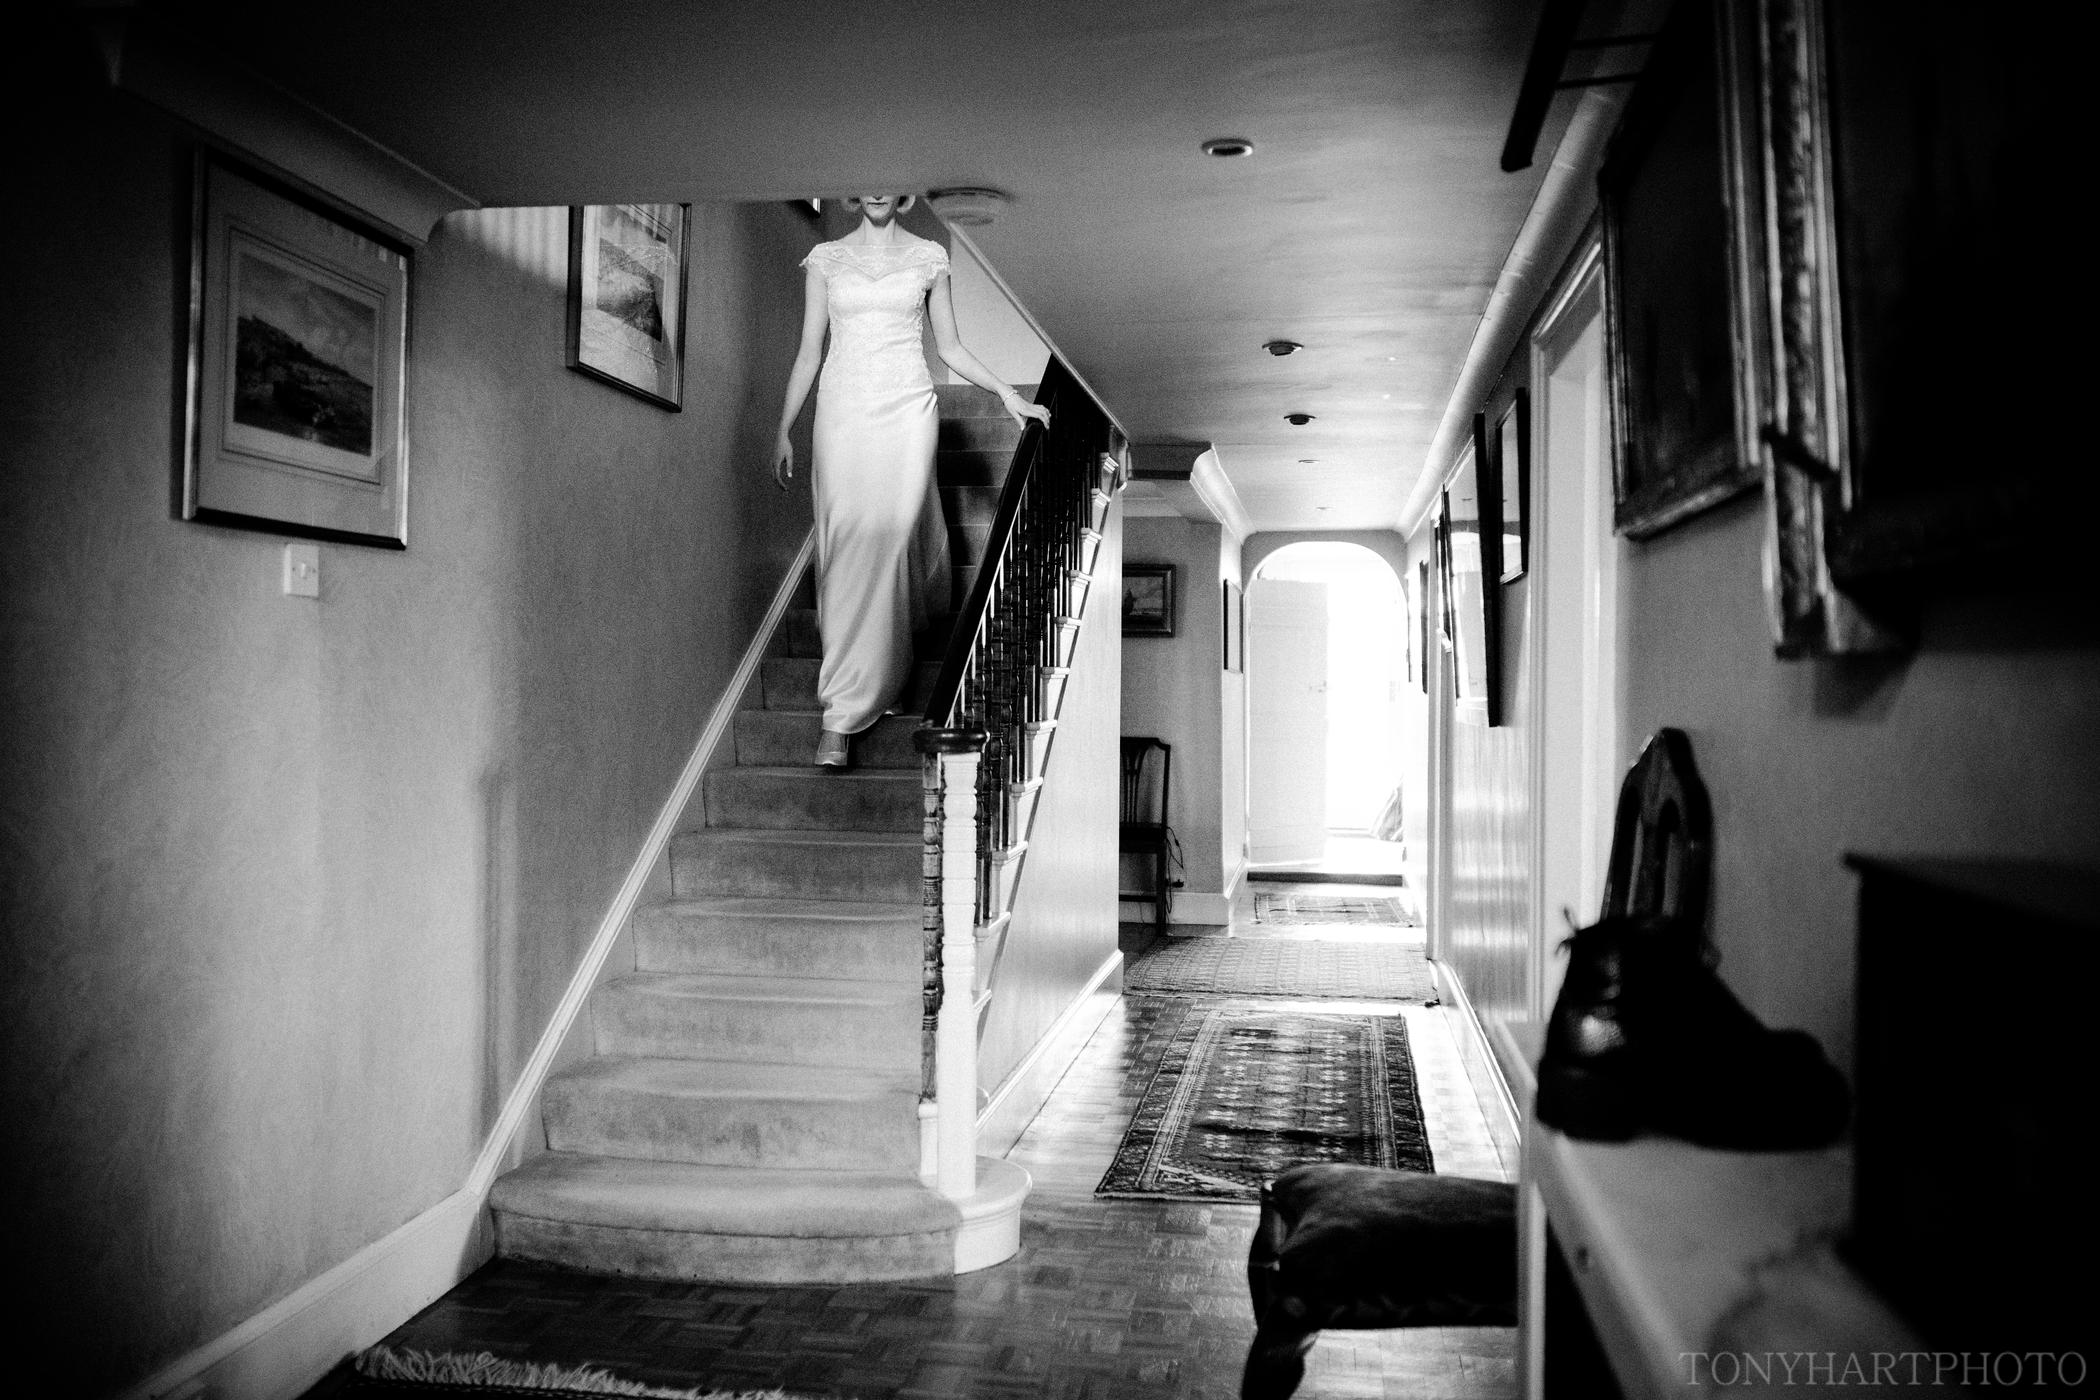 Venetia descending the stairs in her bespoke Emma Victoria Payne wedding dress